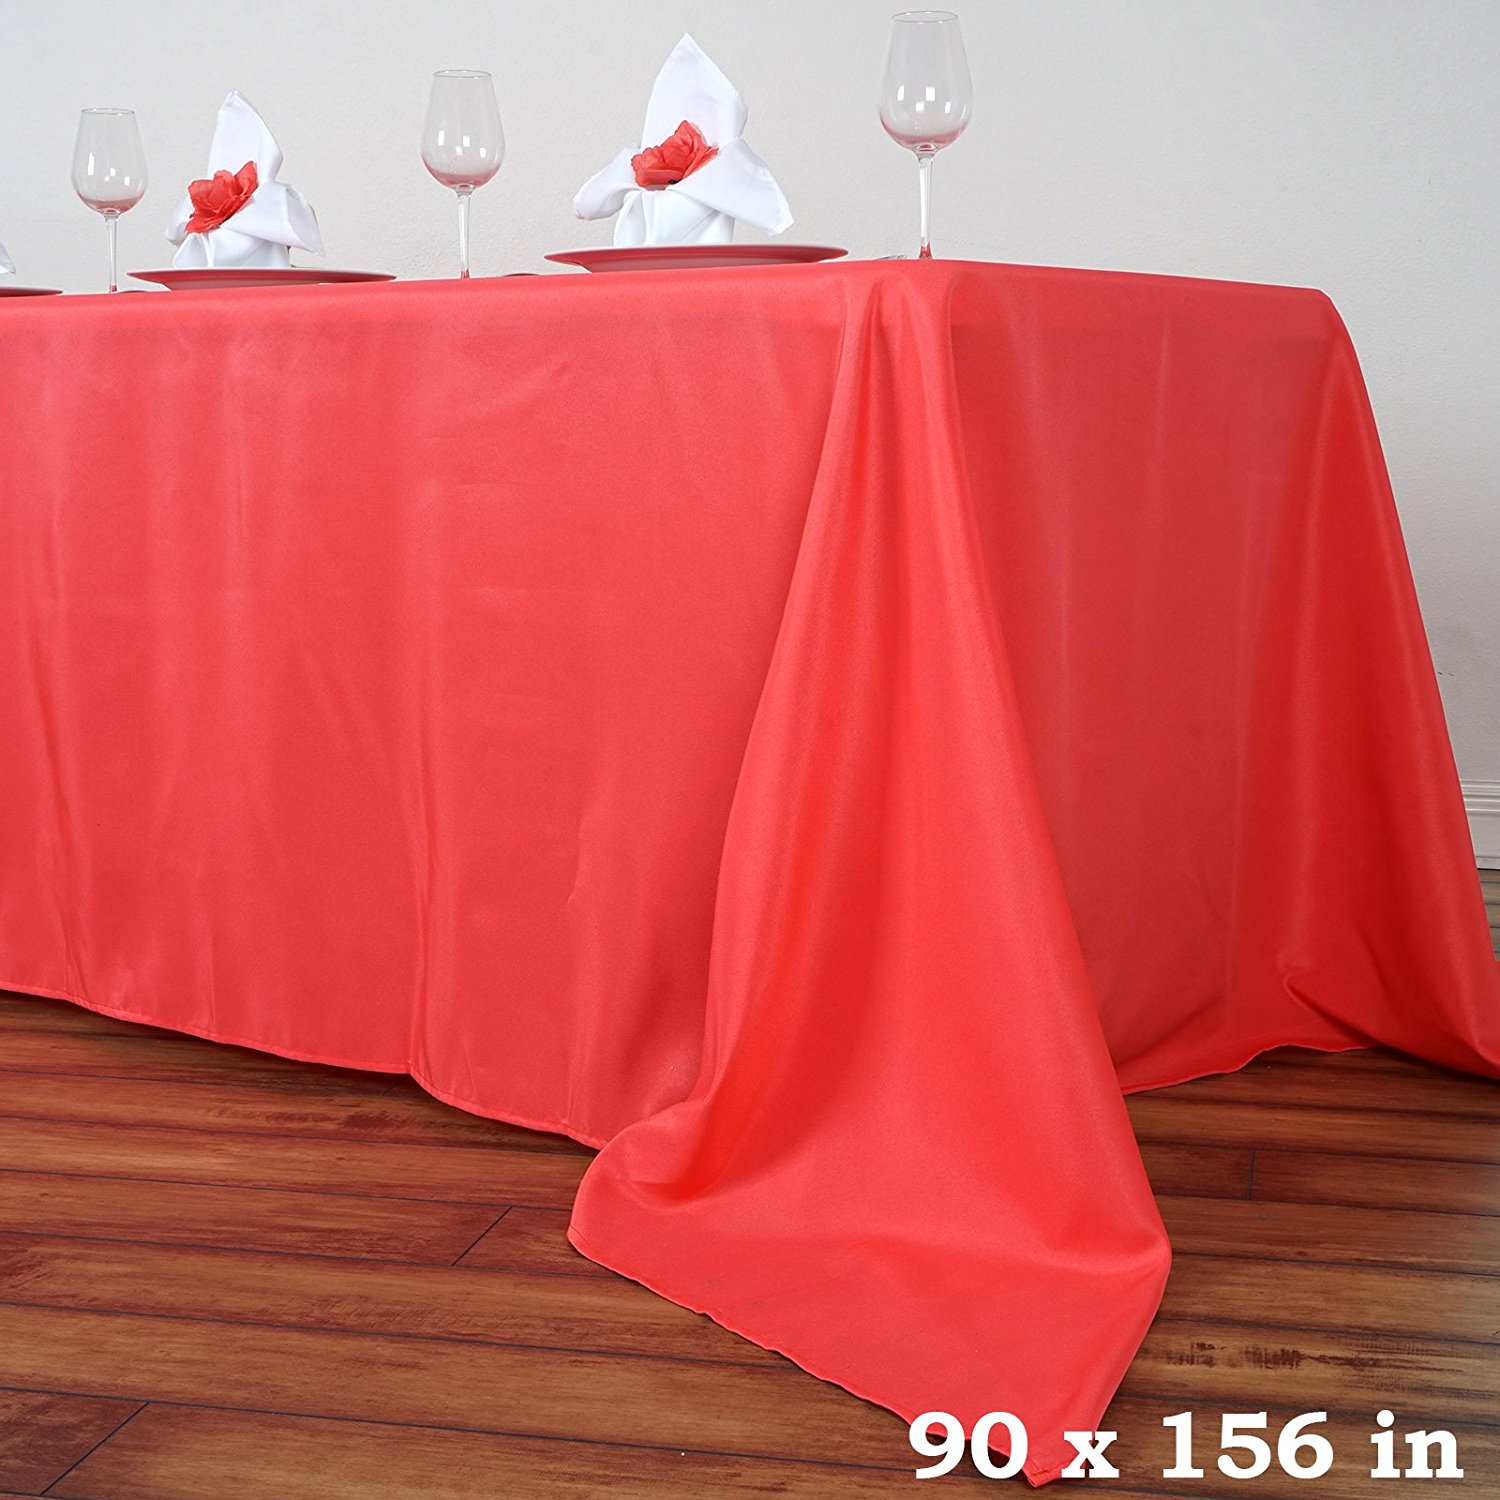 Polyester Tablecloth, Rectangular, Coral   For 6 Foot And 8 Foot Tables